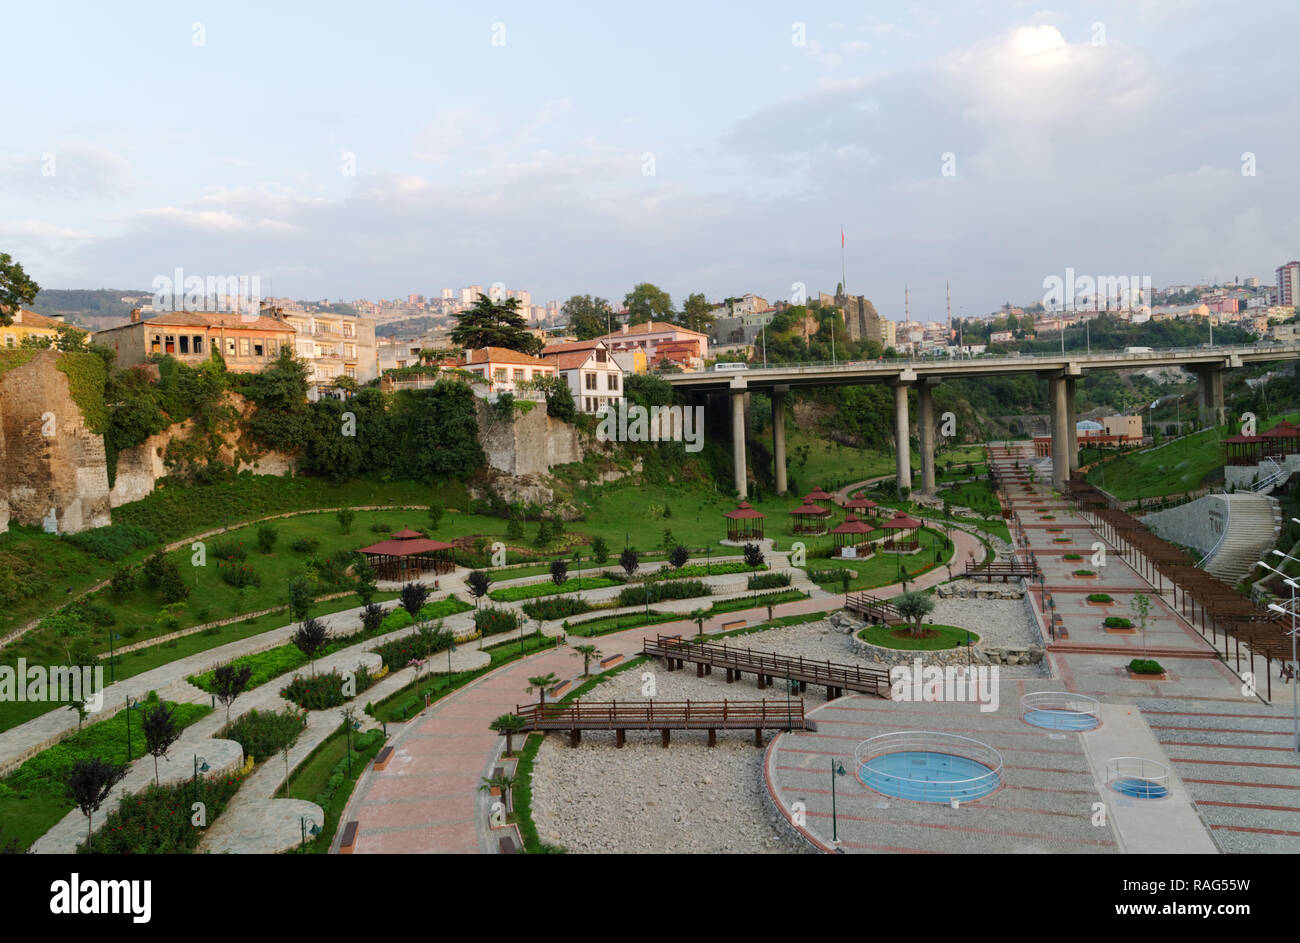 Trabzon, Turkey - August 14, 2008: Zagnos Valley Park, new recreation zone at the city walls of Trabzon. Promenades, amphitheater, duck ponds and gard - Stock Image